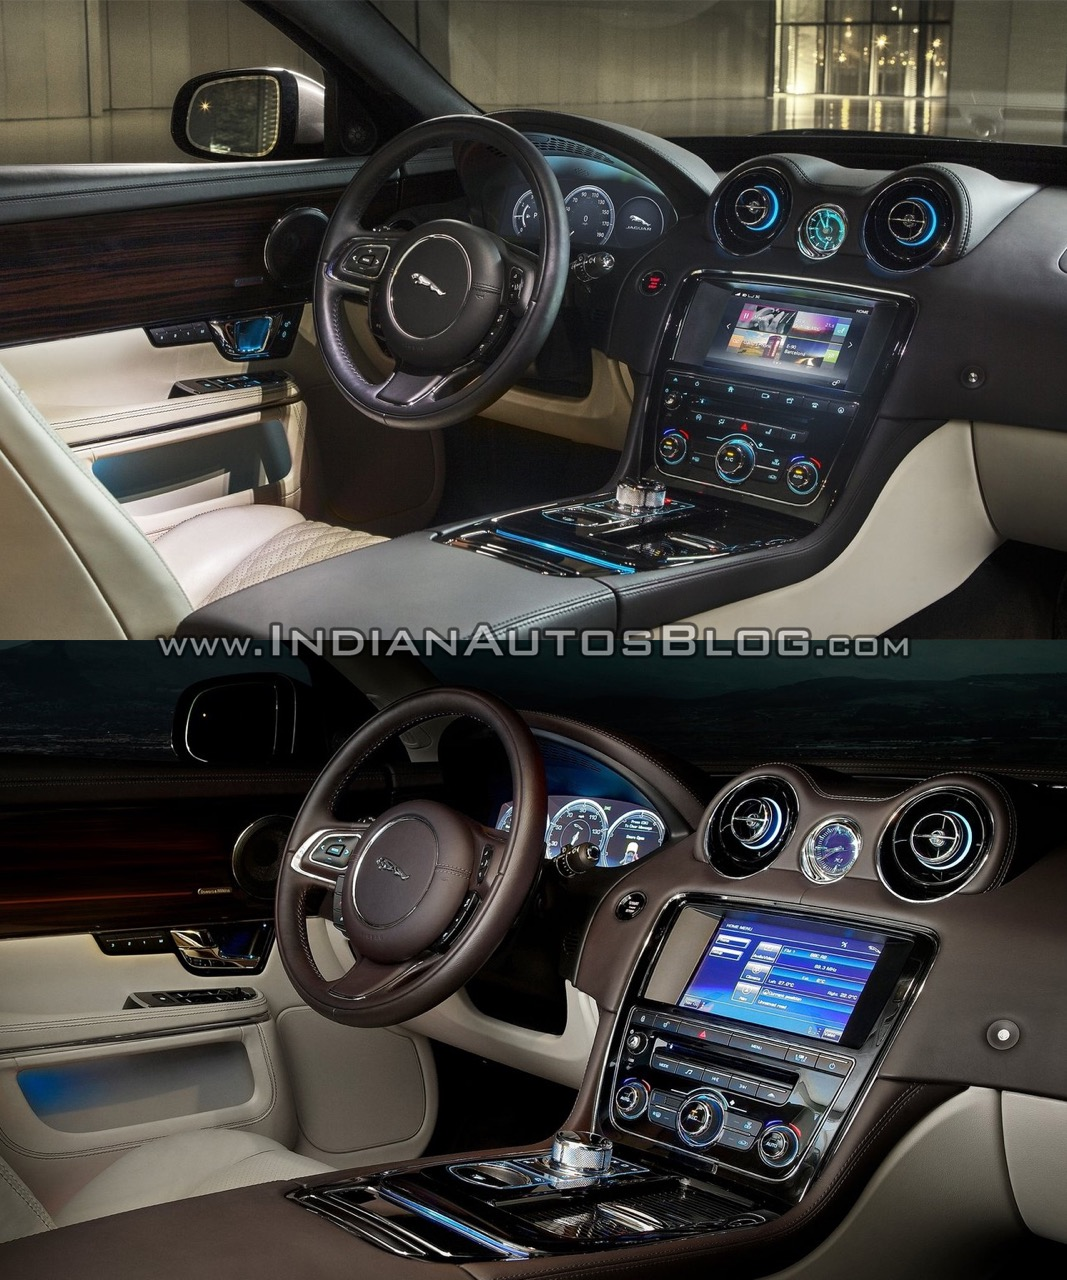 2016 Jaguar Xj Vs 2014 Jaguar Xj Old Vs New